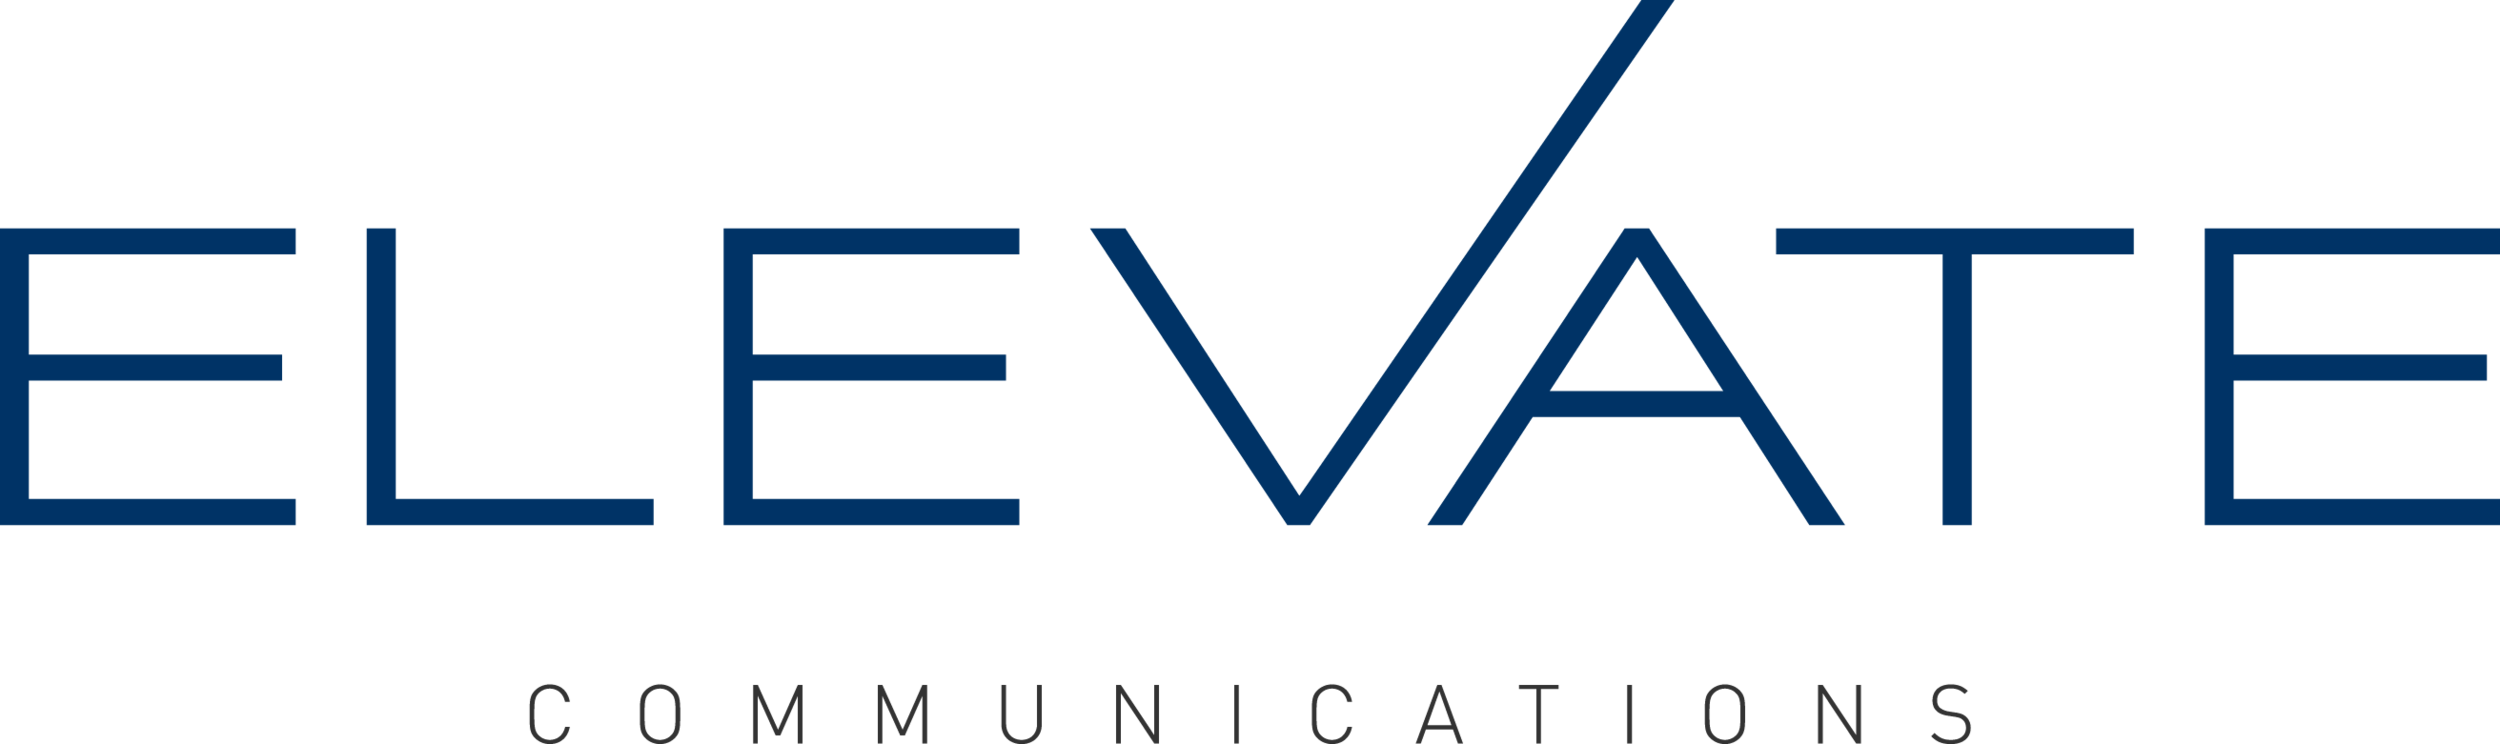 ElevateCommunications_Brand_ID_MASTER.png